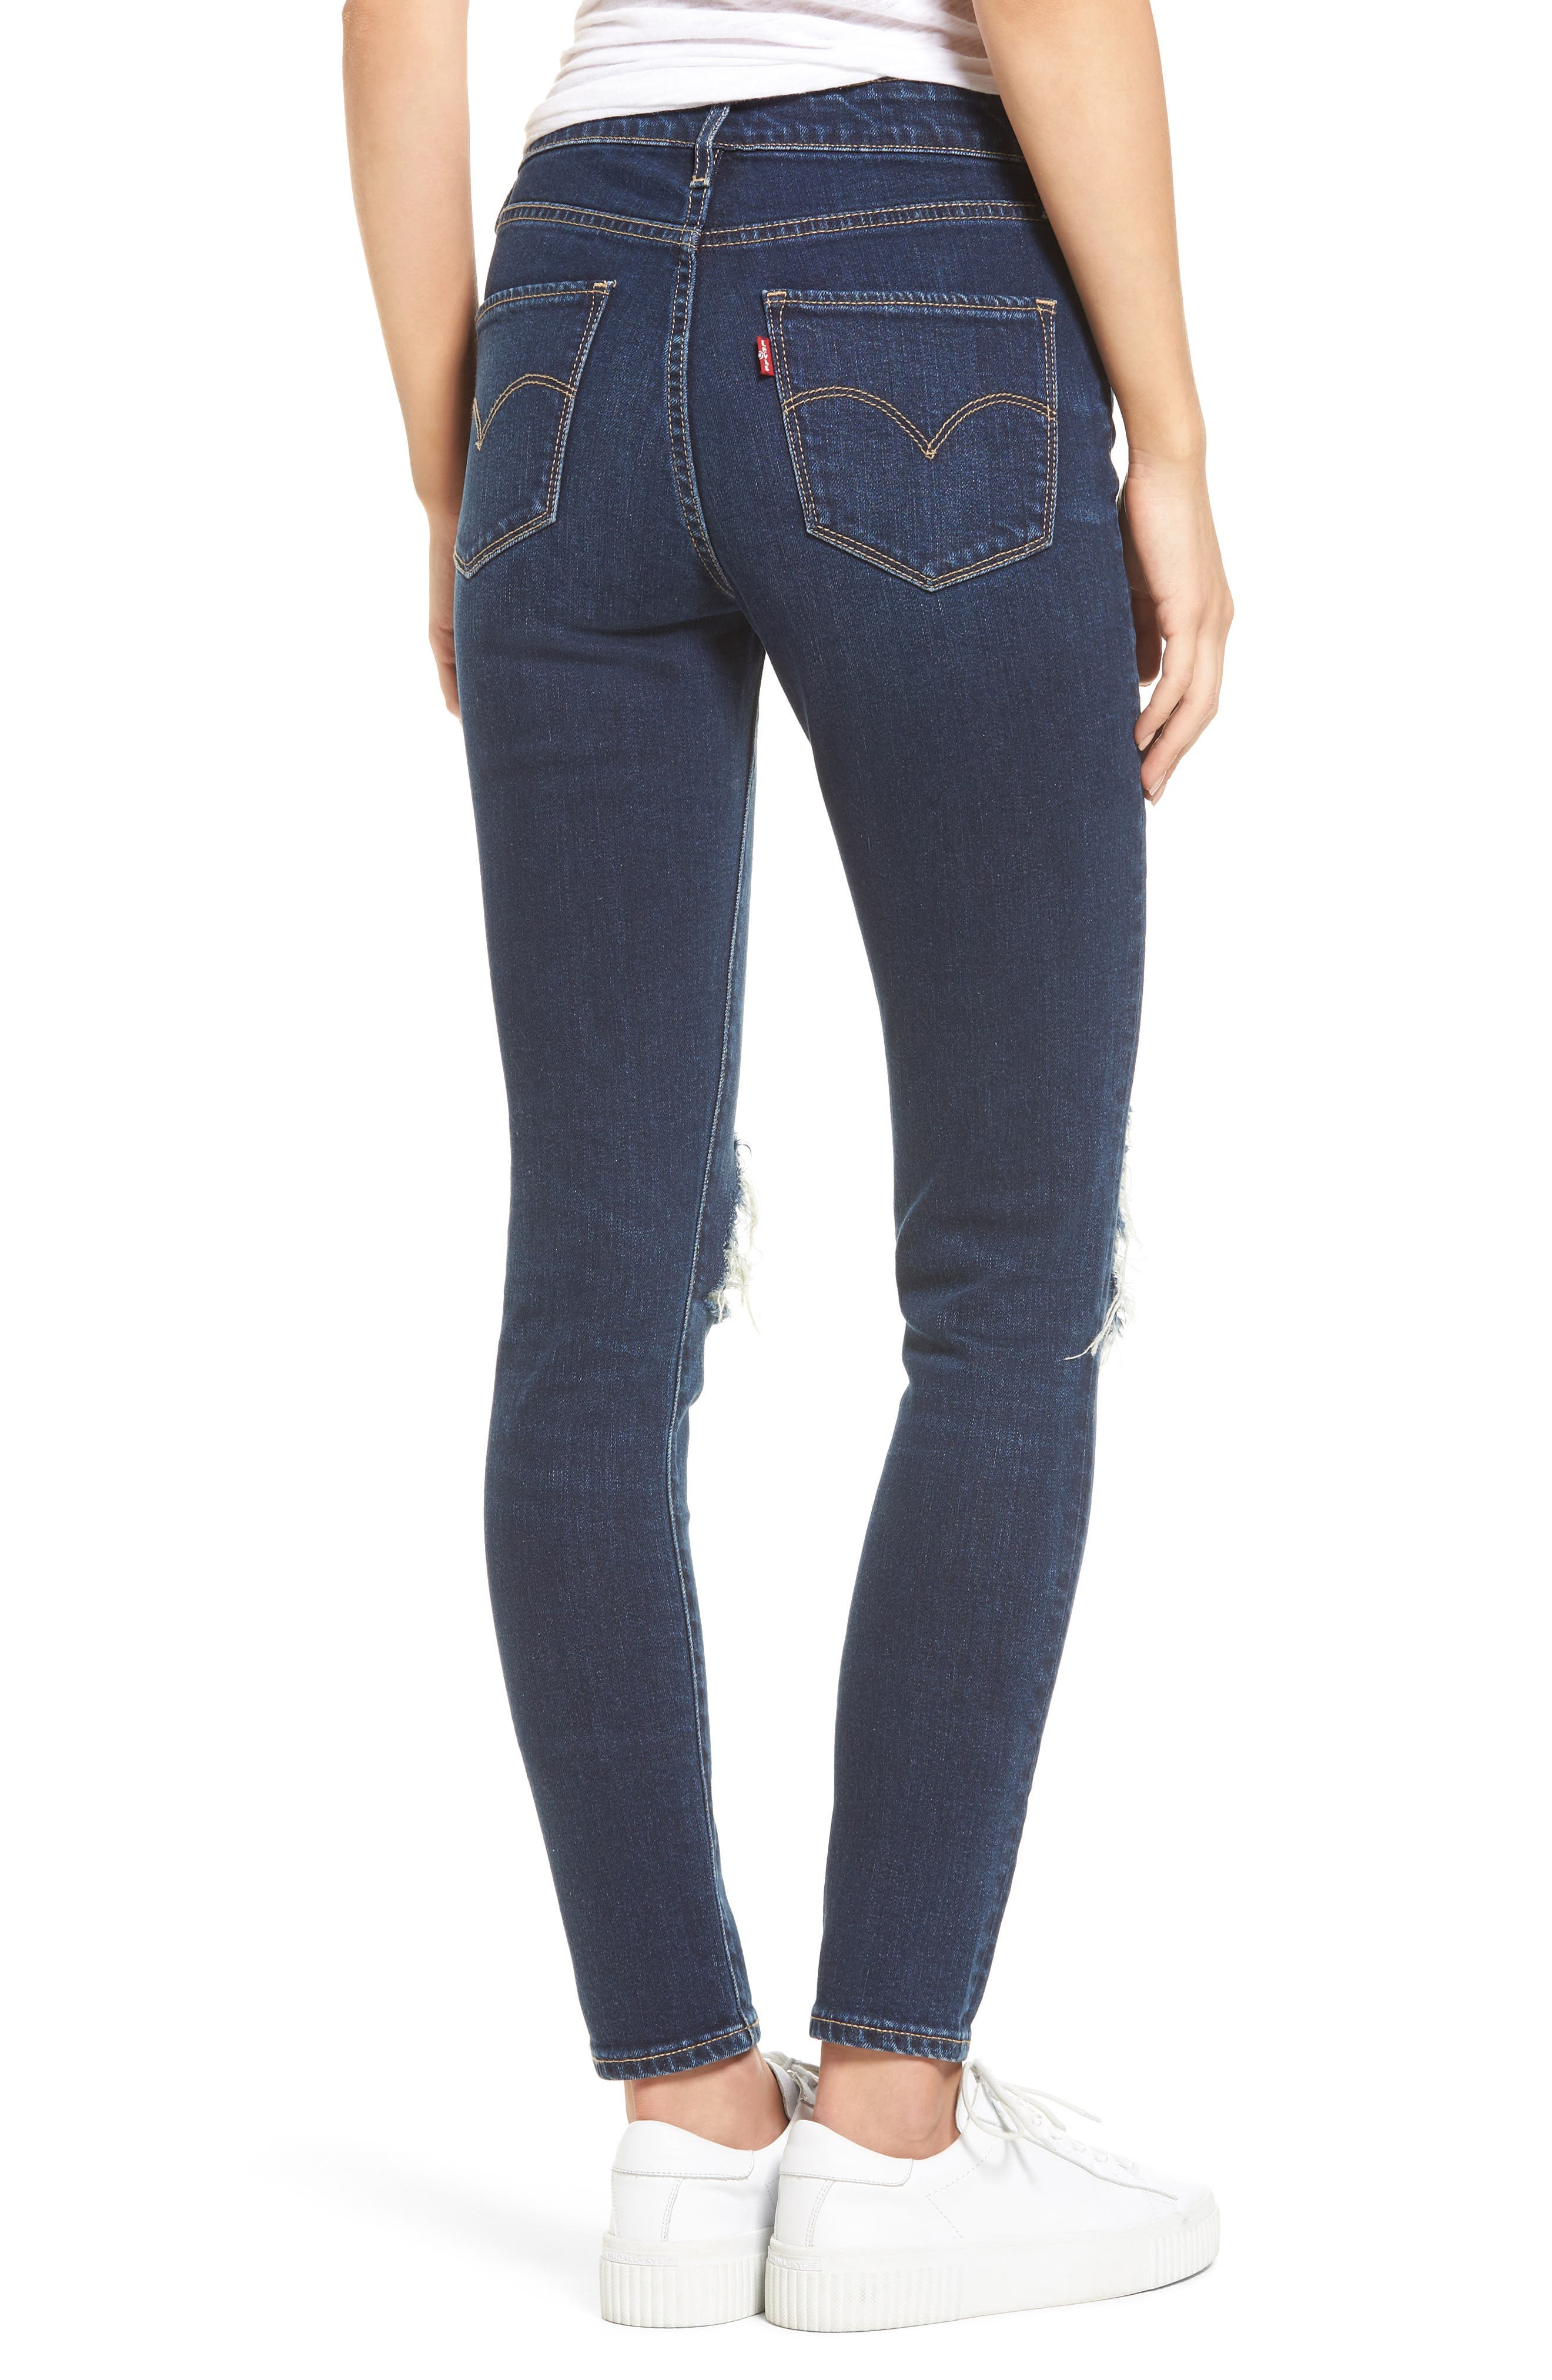 721 Ripped High Waist Skinny Jeans,                             Alternate thumbnail 2, color,                             420